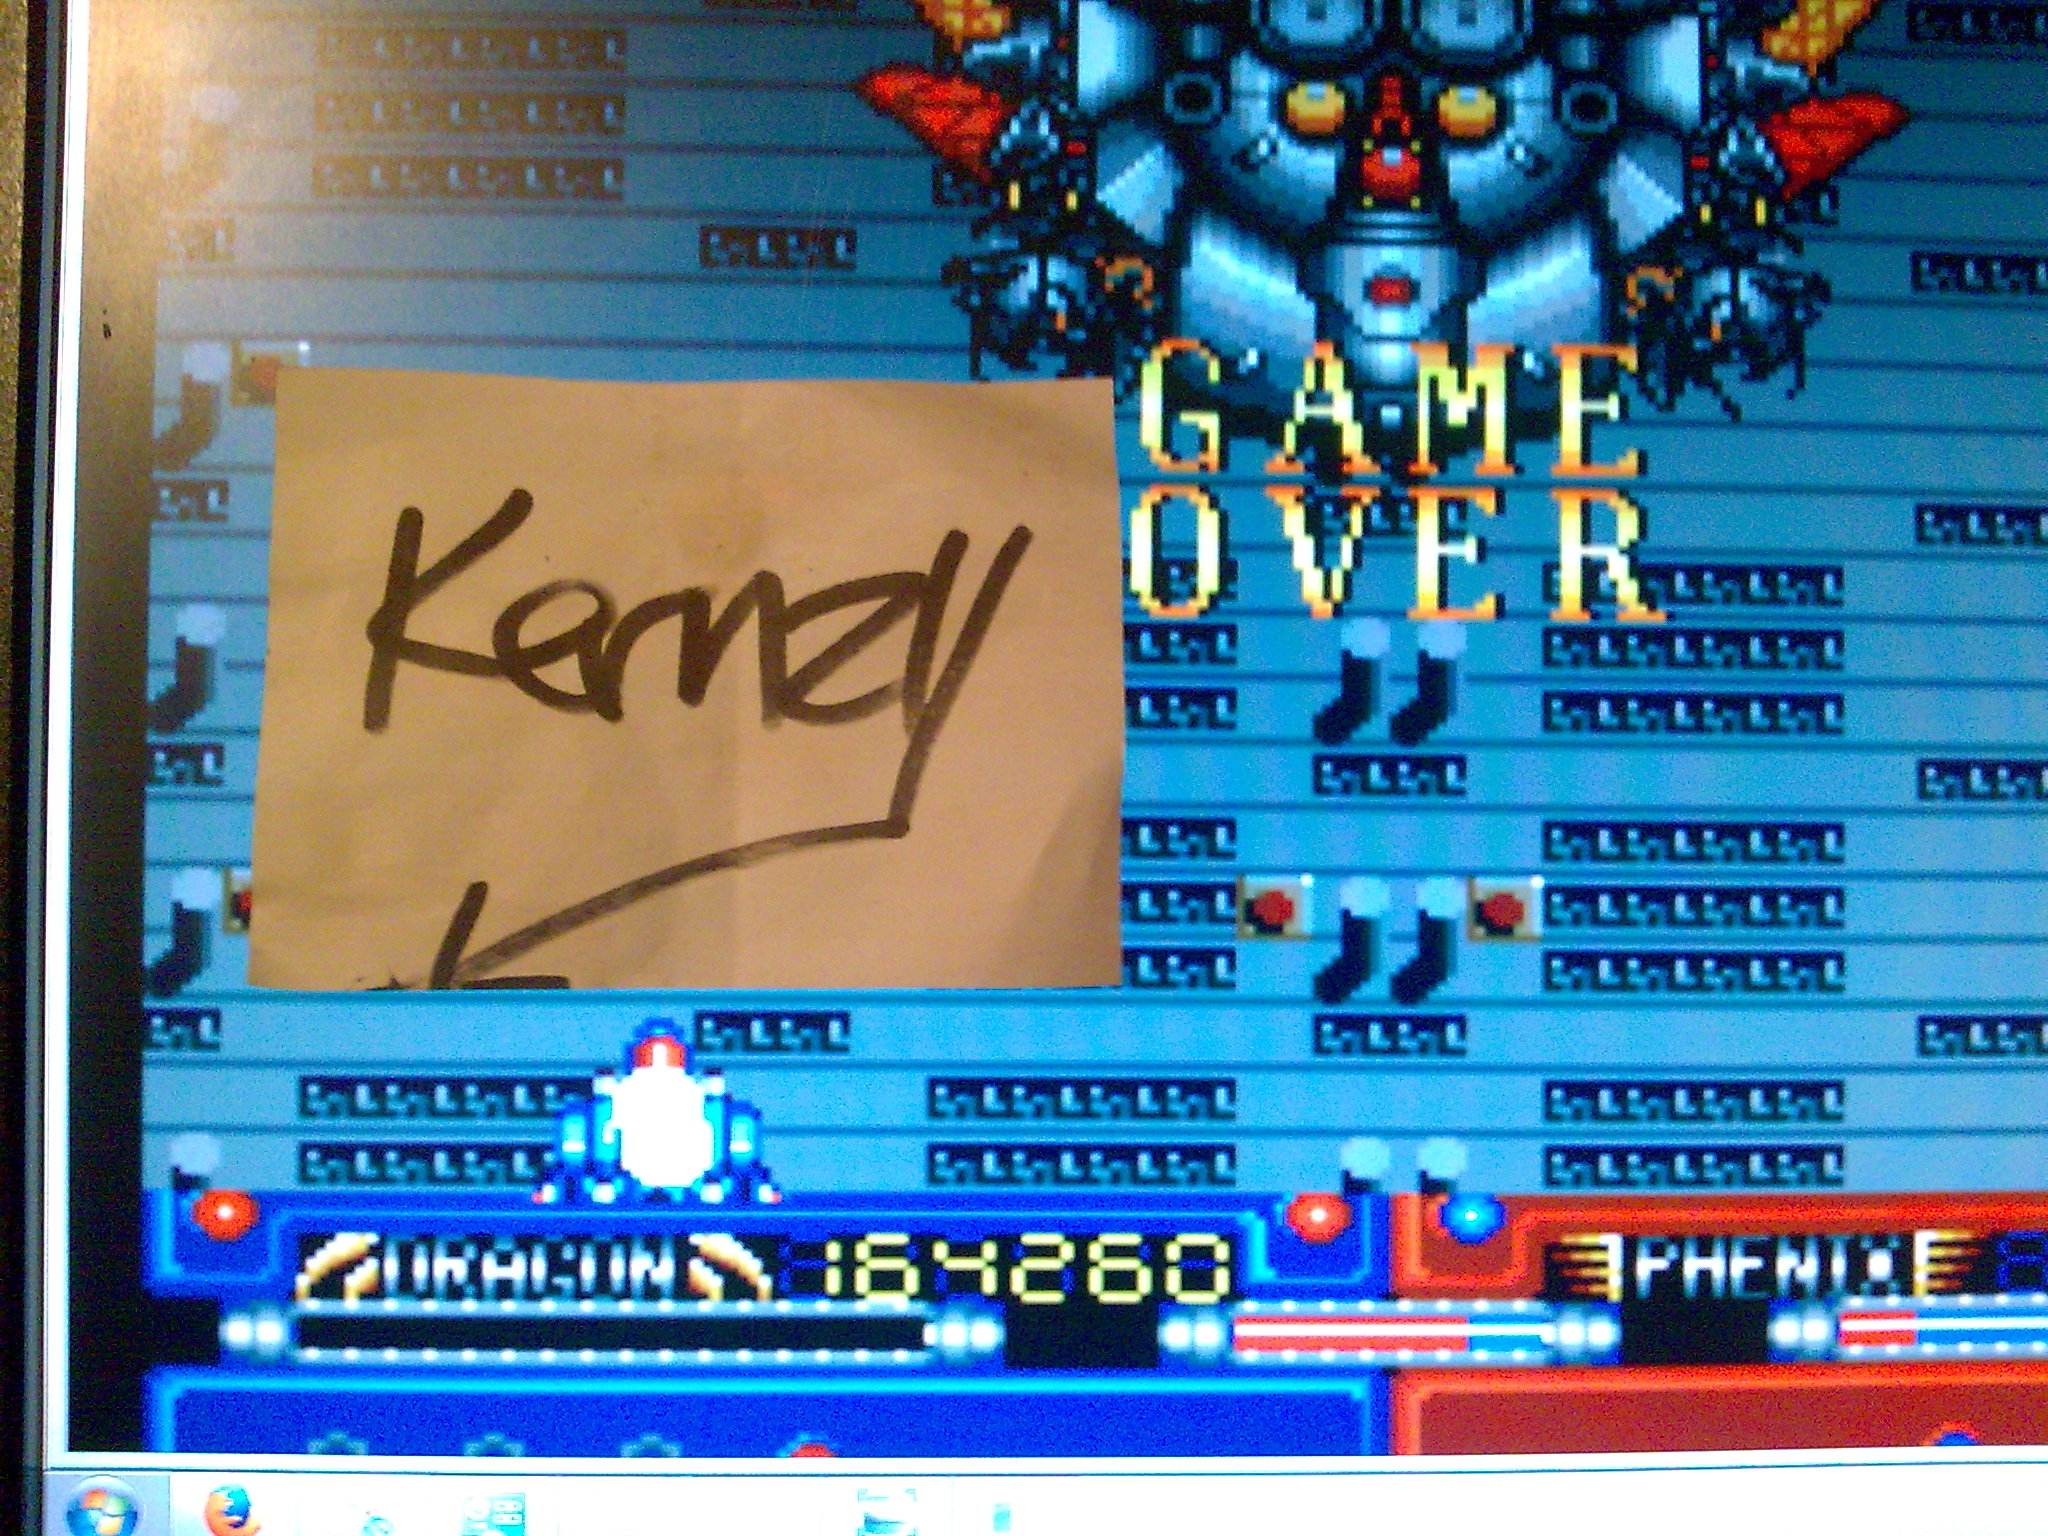 kernzy: Burning Angels (TurboGrafx-16/PC Engine Emulated) 164,260 points on 2014-10-09 15:00:01